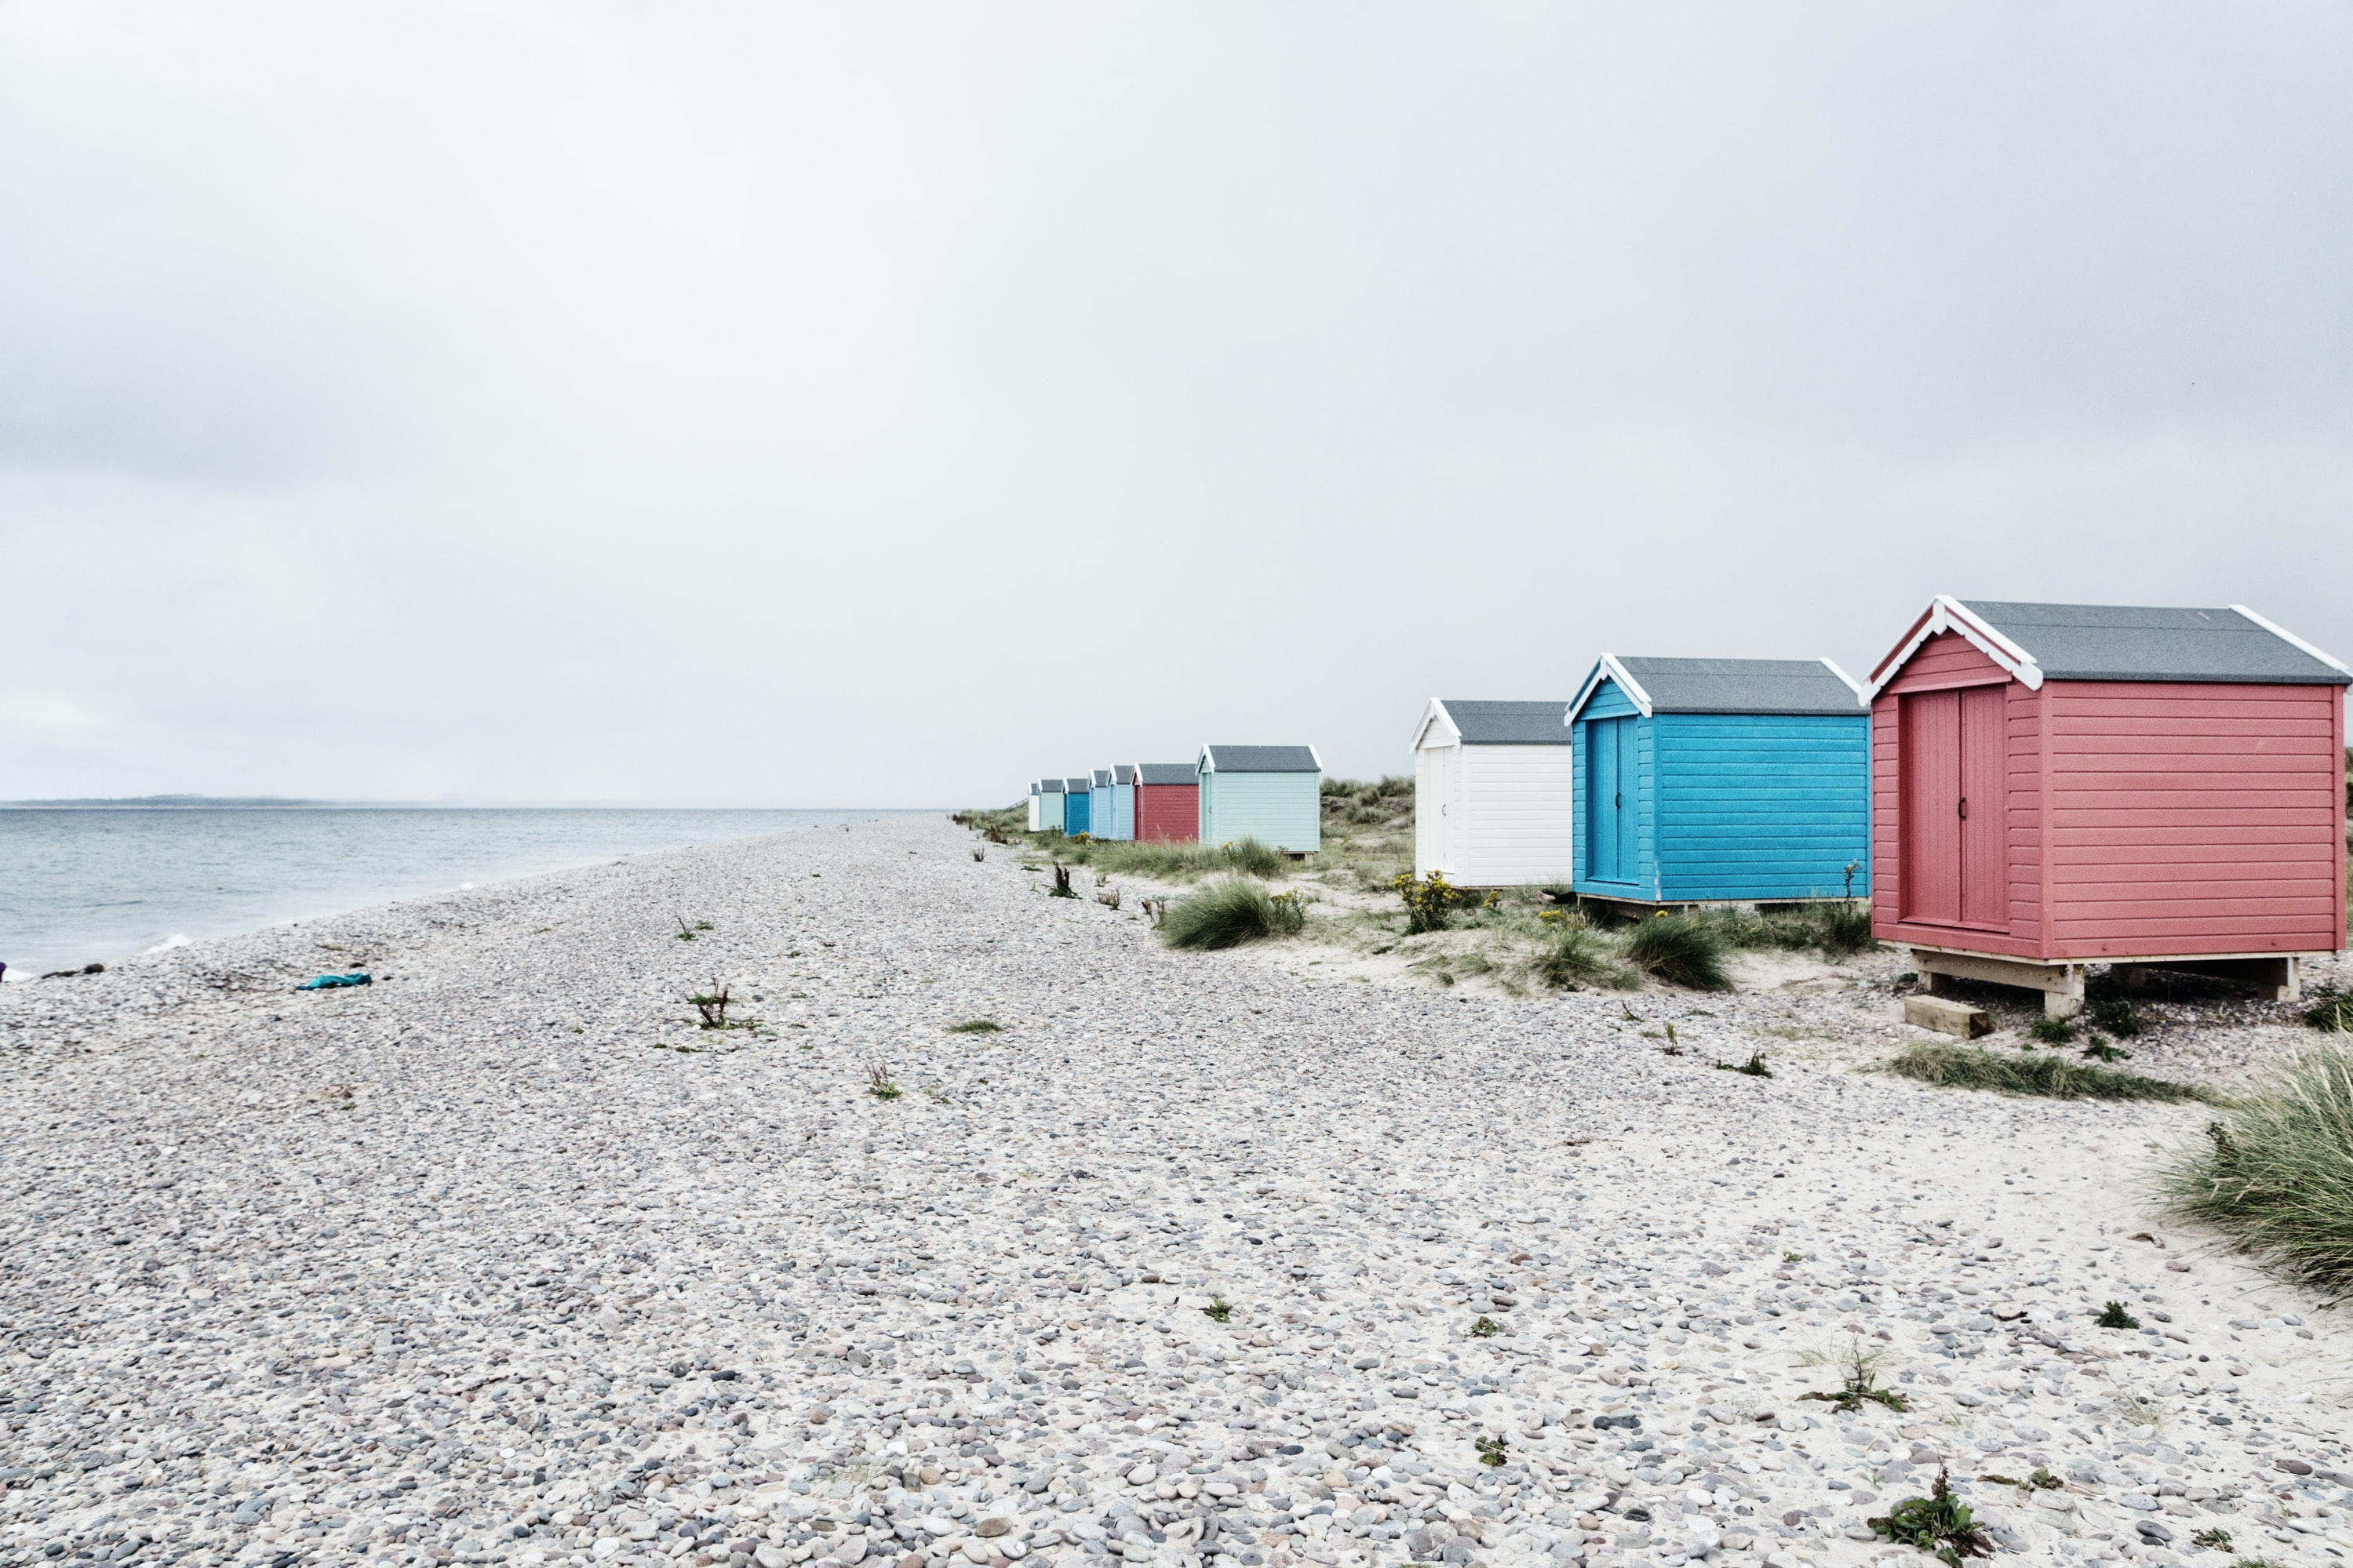 assorted-color sheds near seashore at daytime